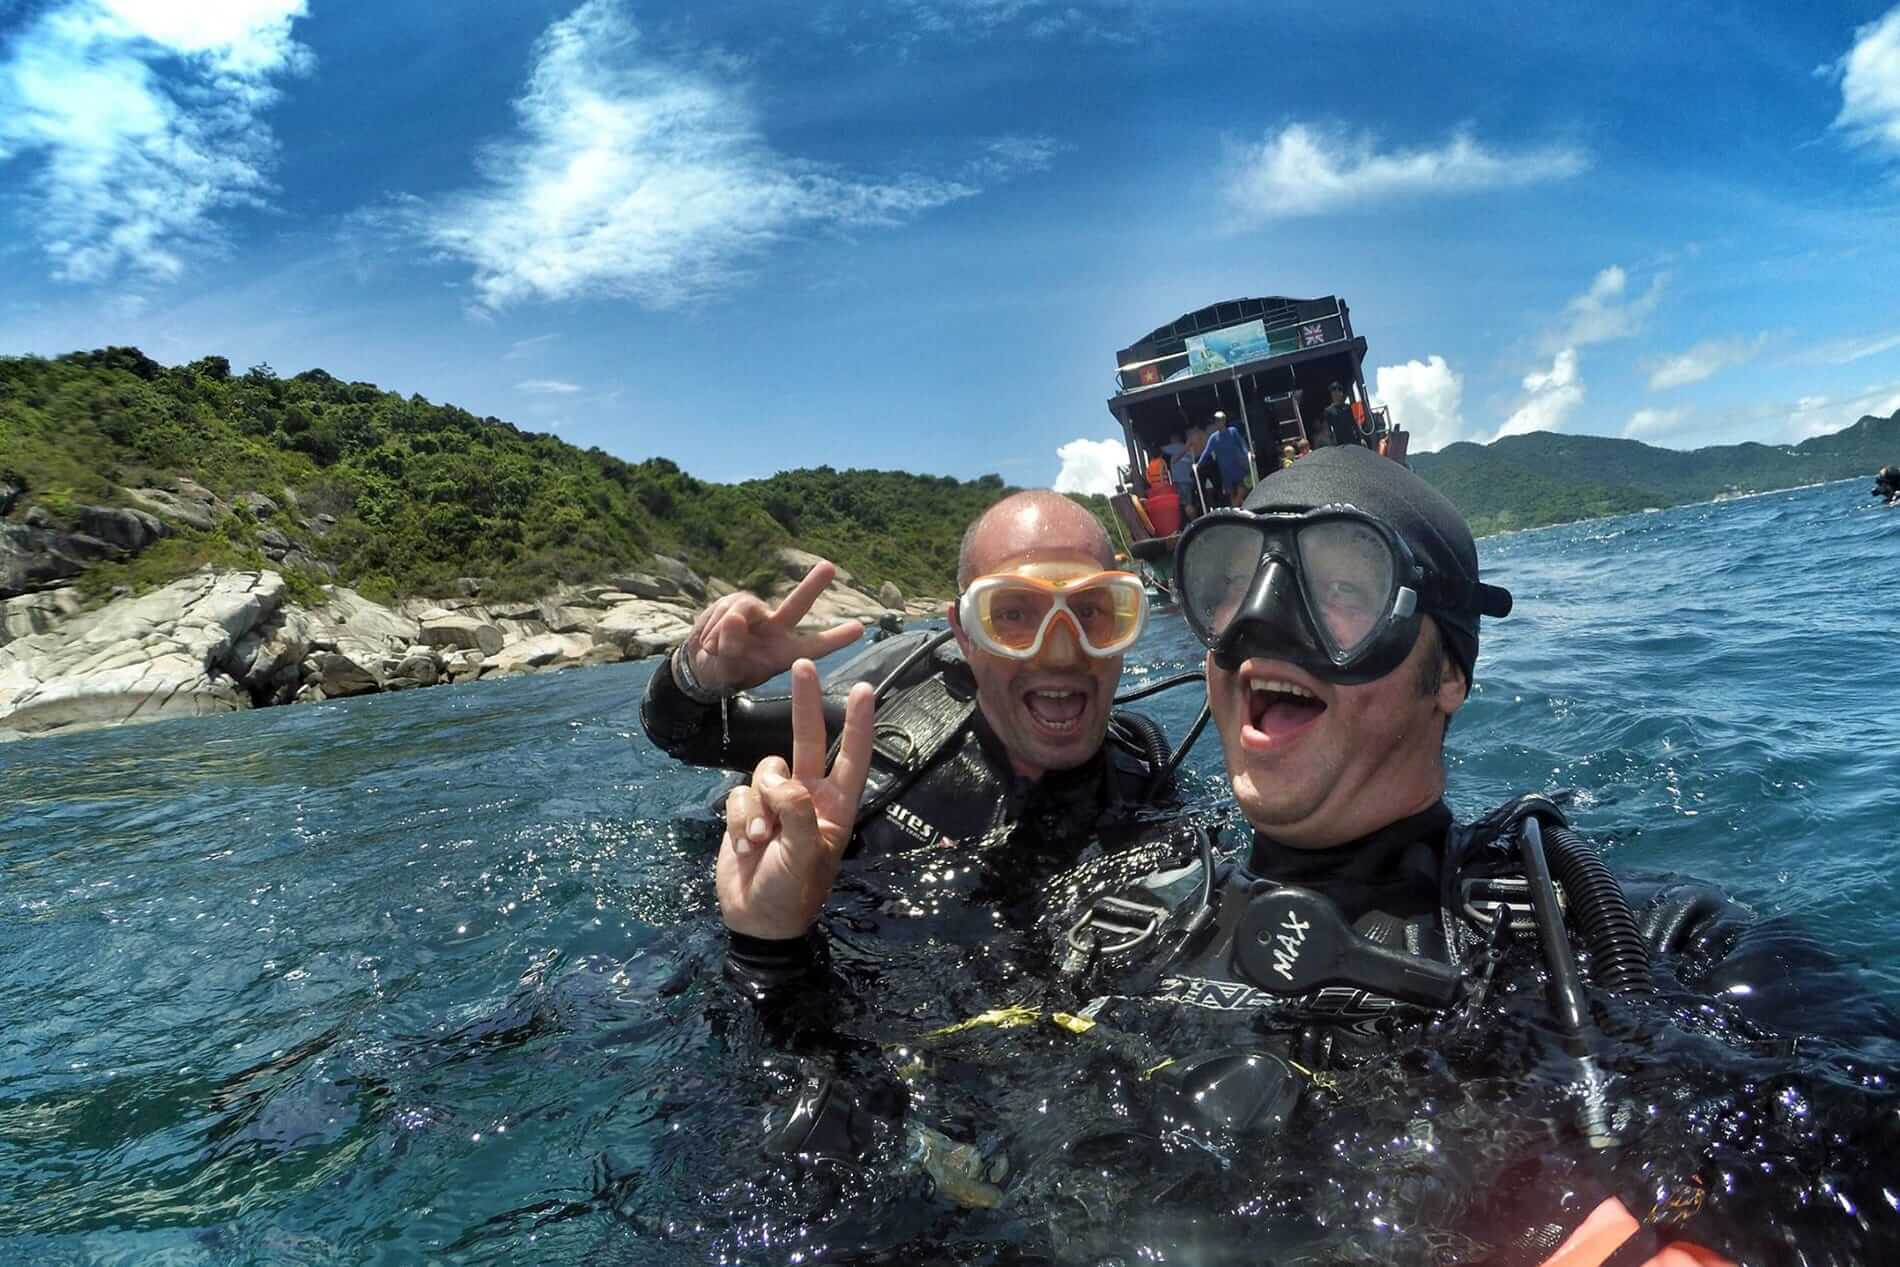 Happy divers create an epic selfie